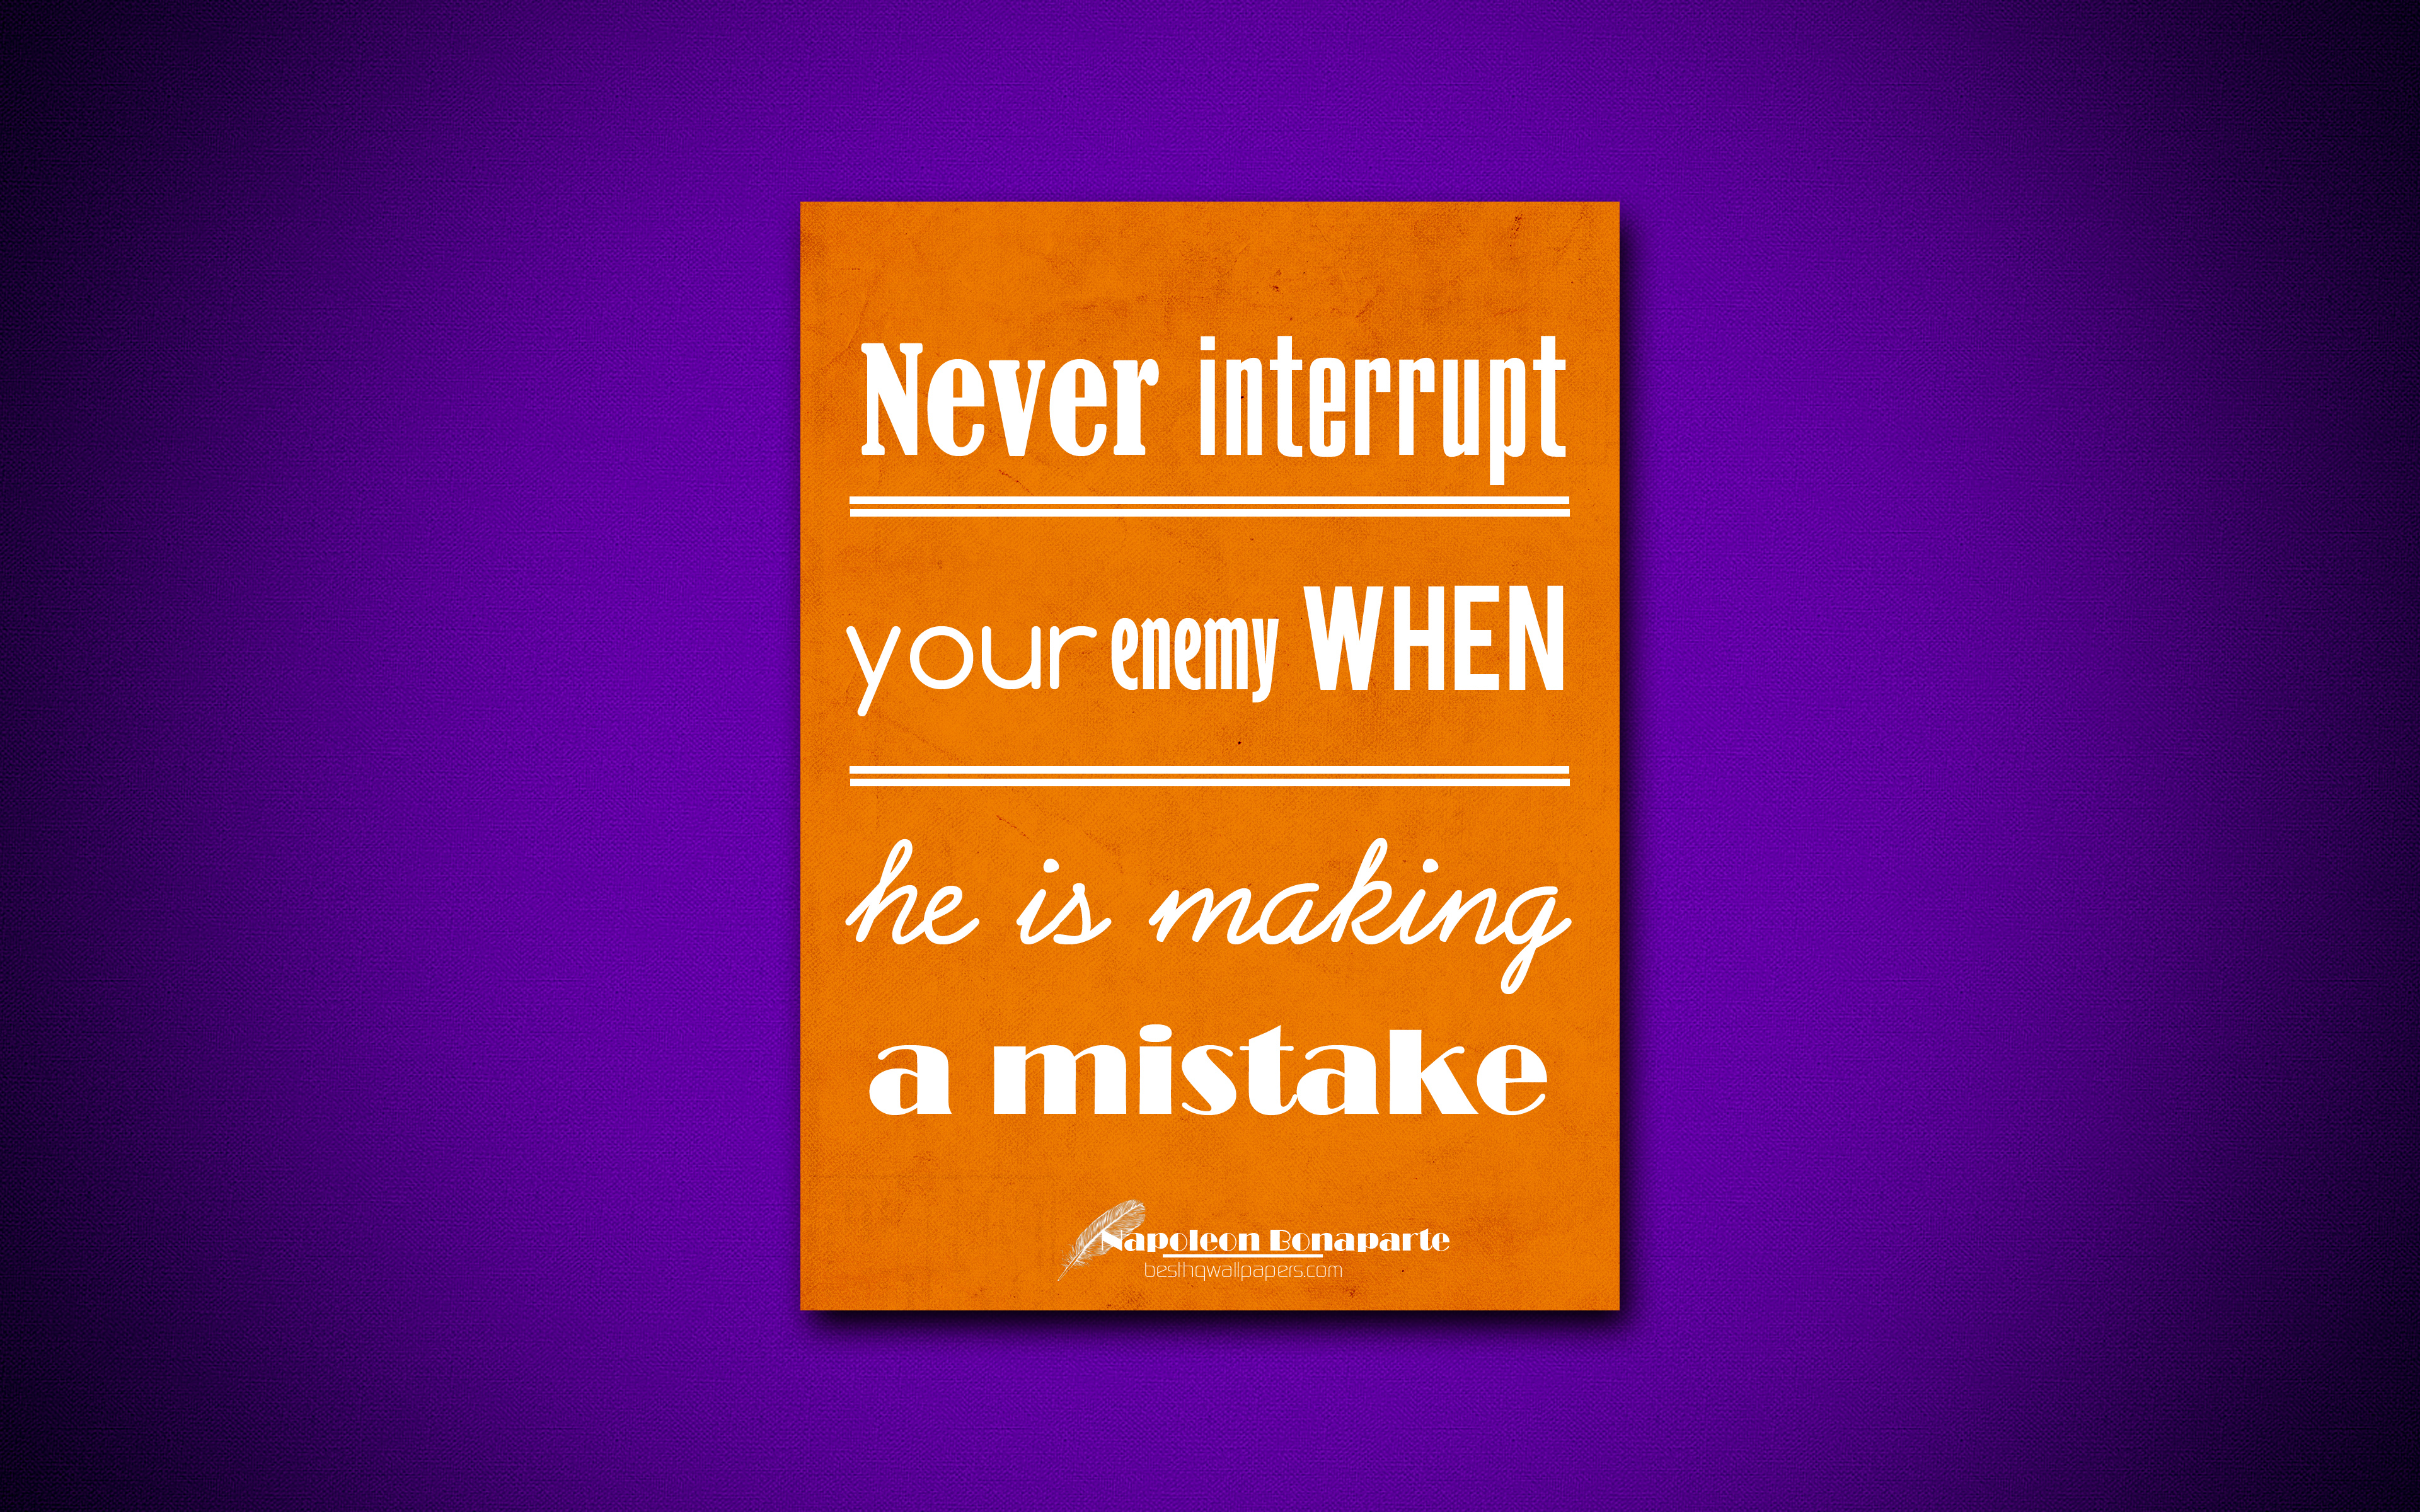 never interrupt your enemy when he is making a mistake